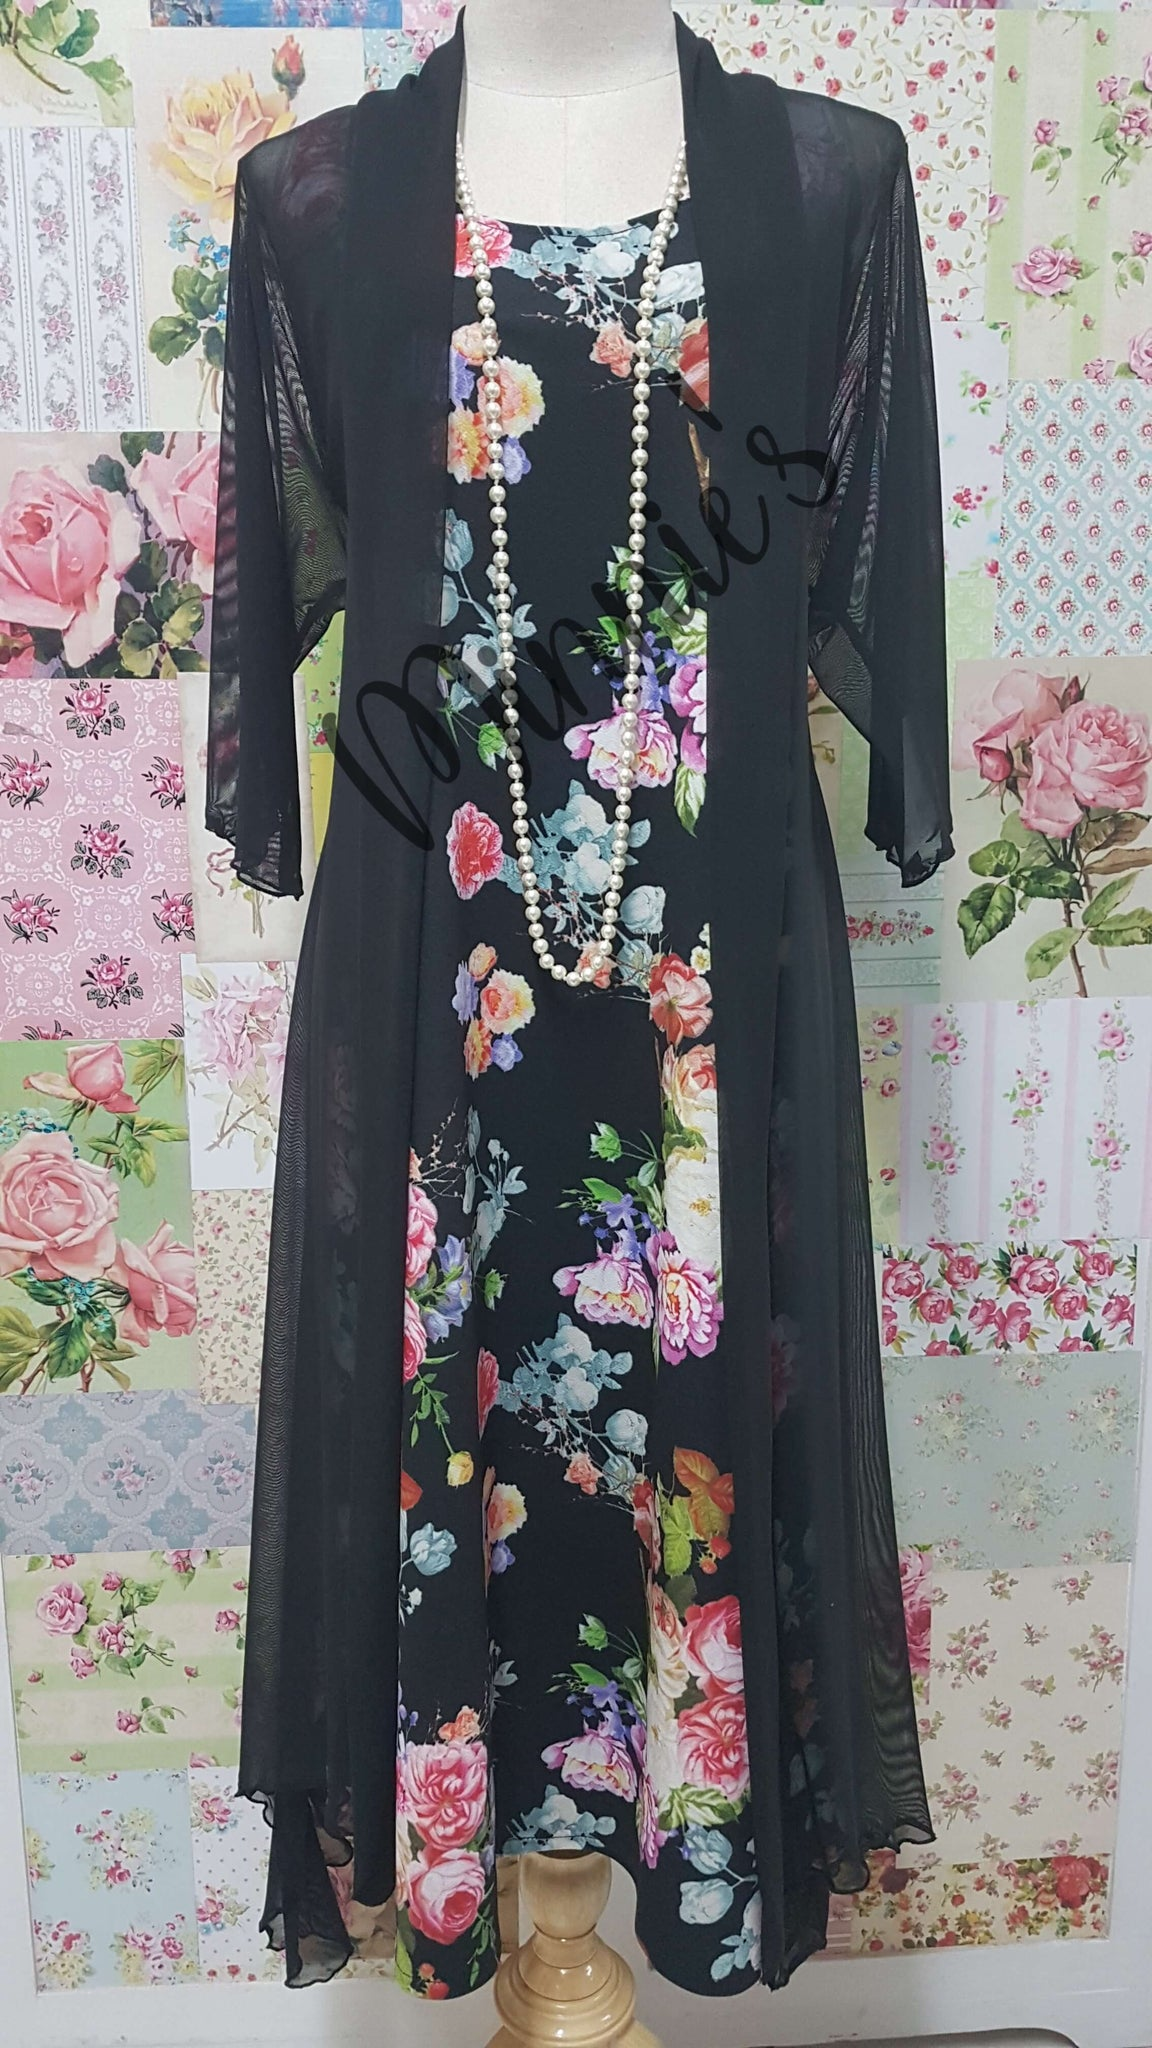 Black Floral 2-Piece Dress Set MB0238